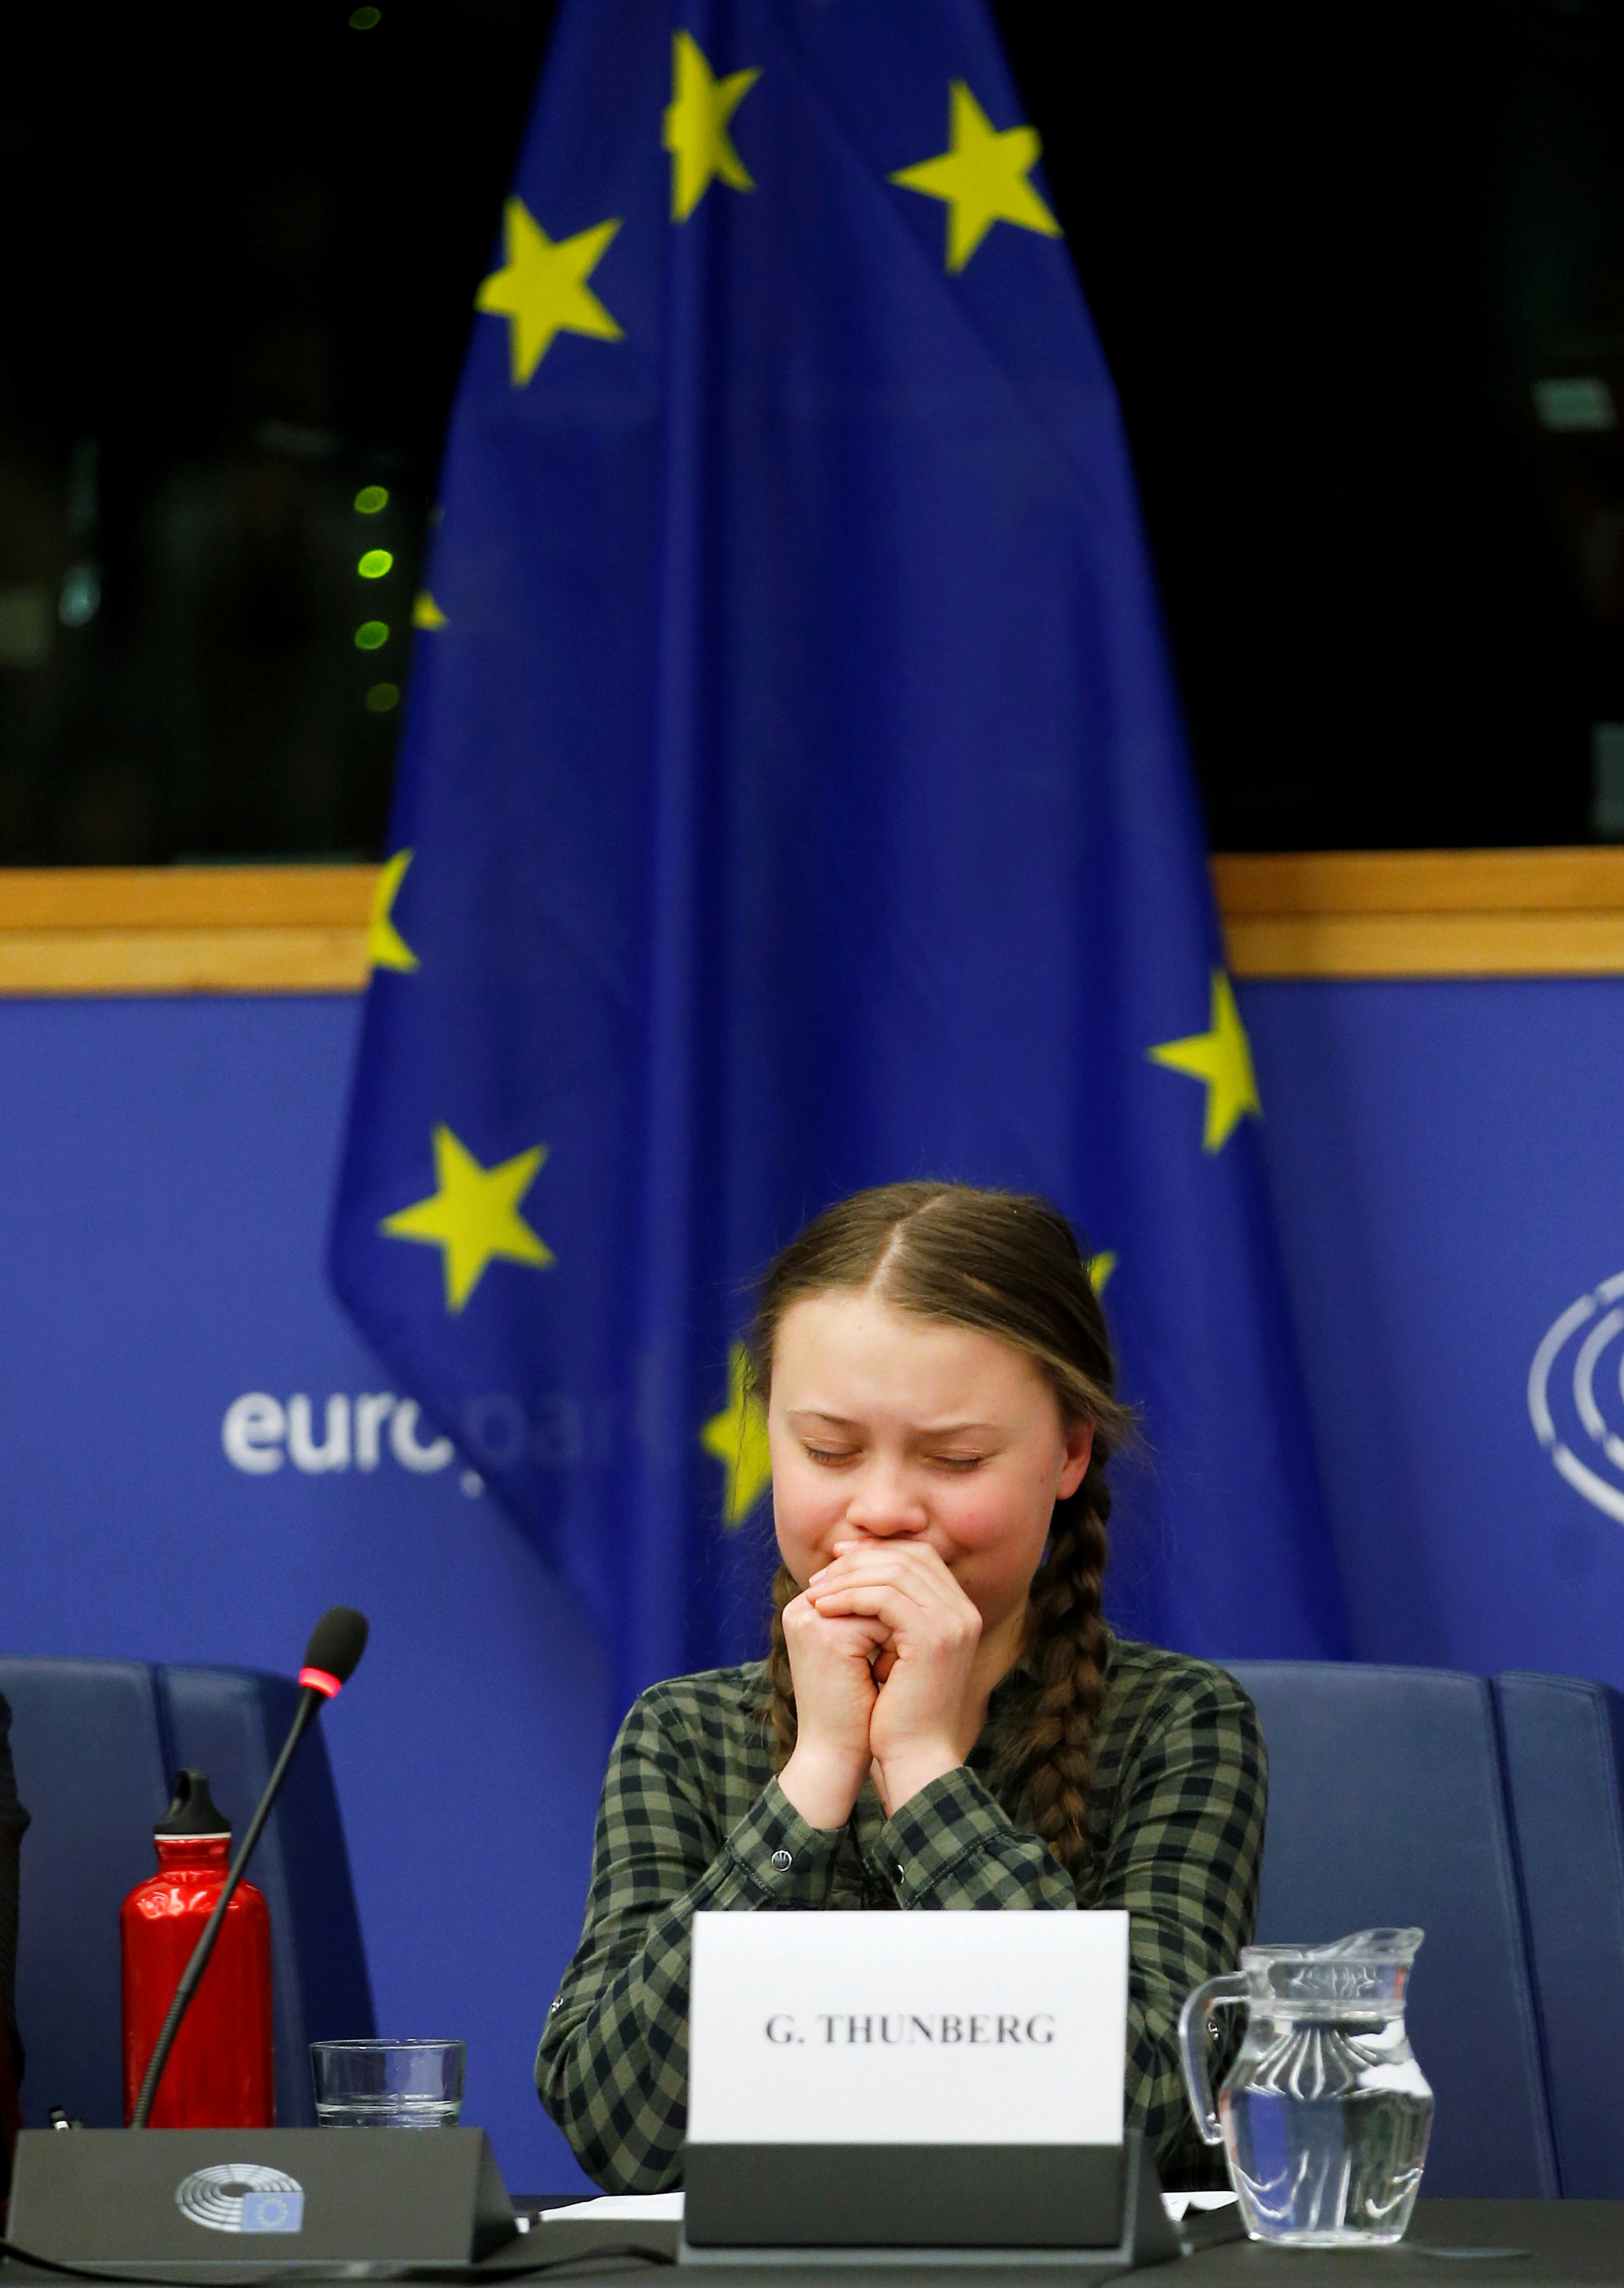 Swedish environmental activist Greta Thunberg cries at the end of her a speech to the environment committee of the European Parliament in Strasbourg, April 16, 2019.   REUTERS/Vincent Kessler